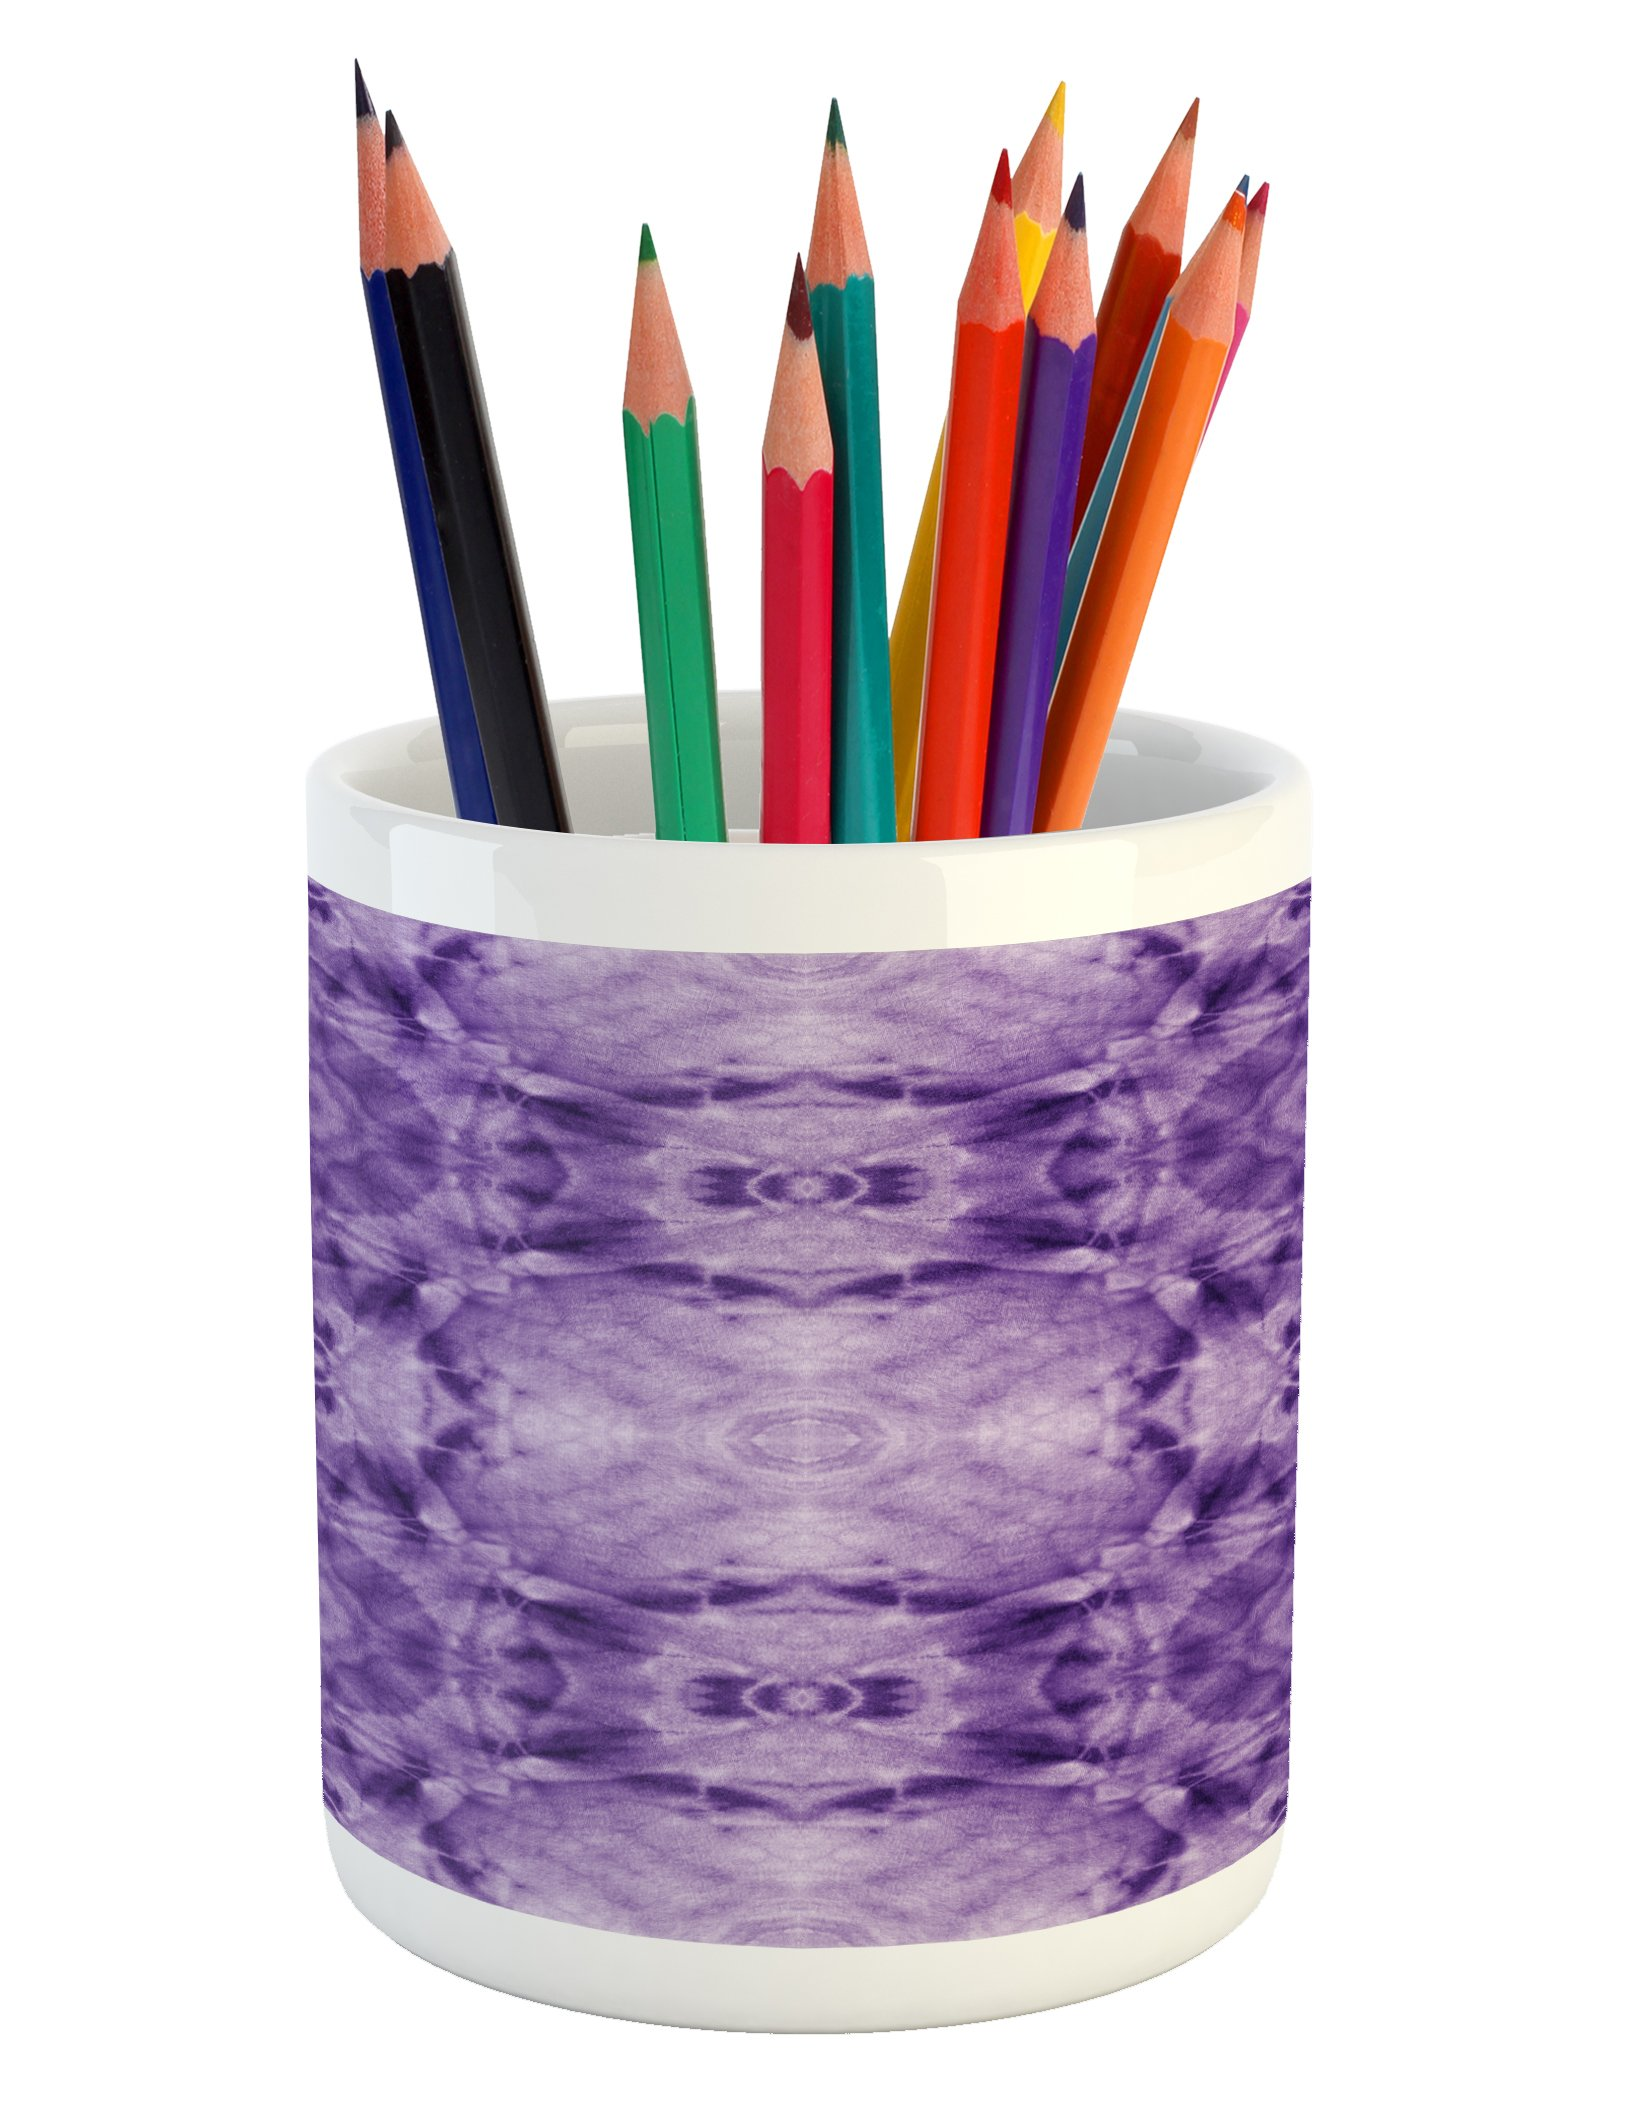 Lunarable Thai Pencil Pen Holder, Thai Style Motif Generated with Square Shaped Kaleidoscope Murky Toned Forms Psychedelic, Printed Ceramic Pencil Pen Holder for Desk Office Accessory, Purple by Lunarable